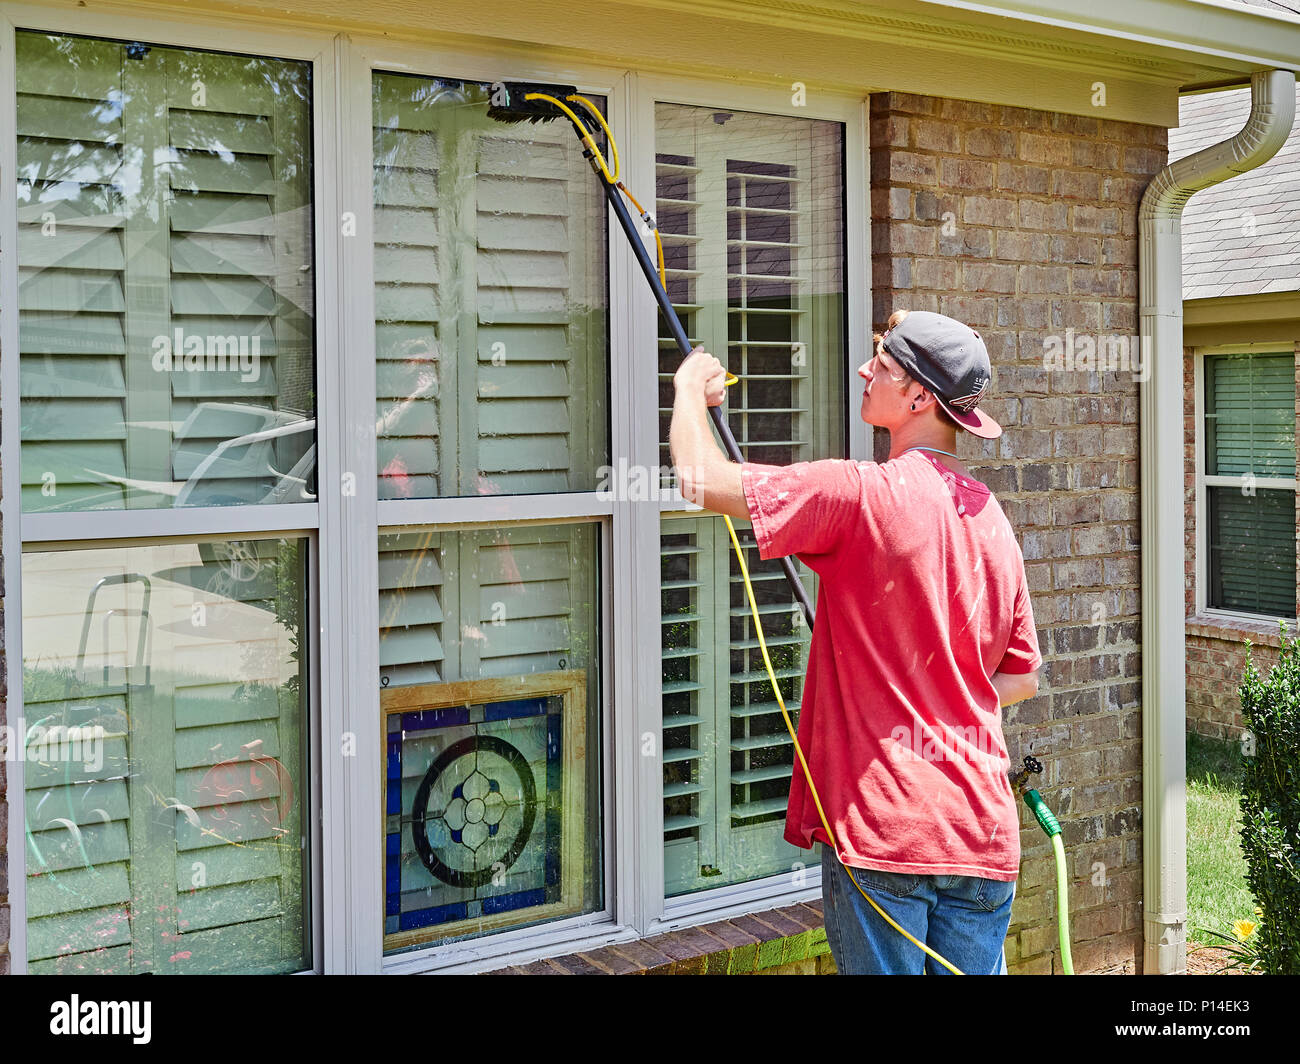 White male adult window washer employee or worker washing windows on a residential house or home in suburban America.Stock Photo